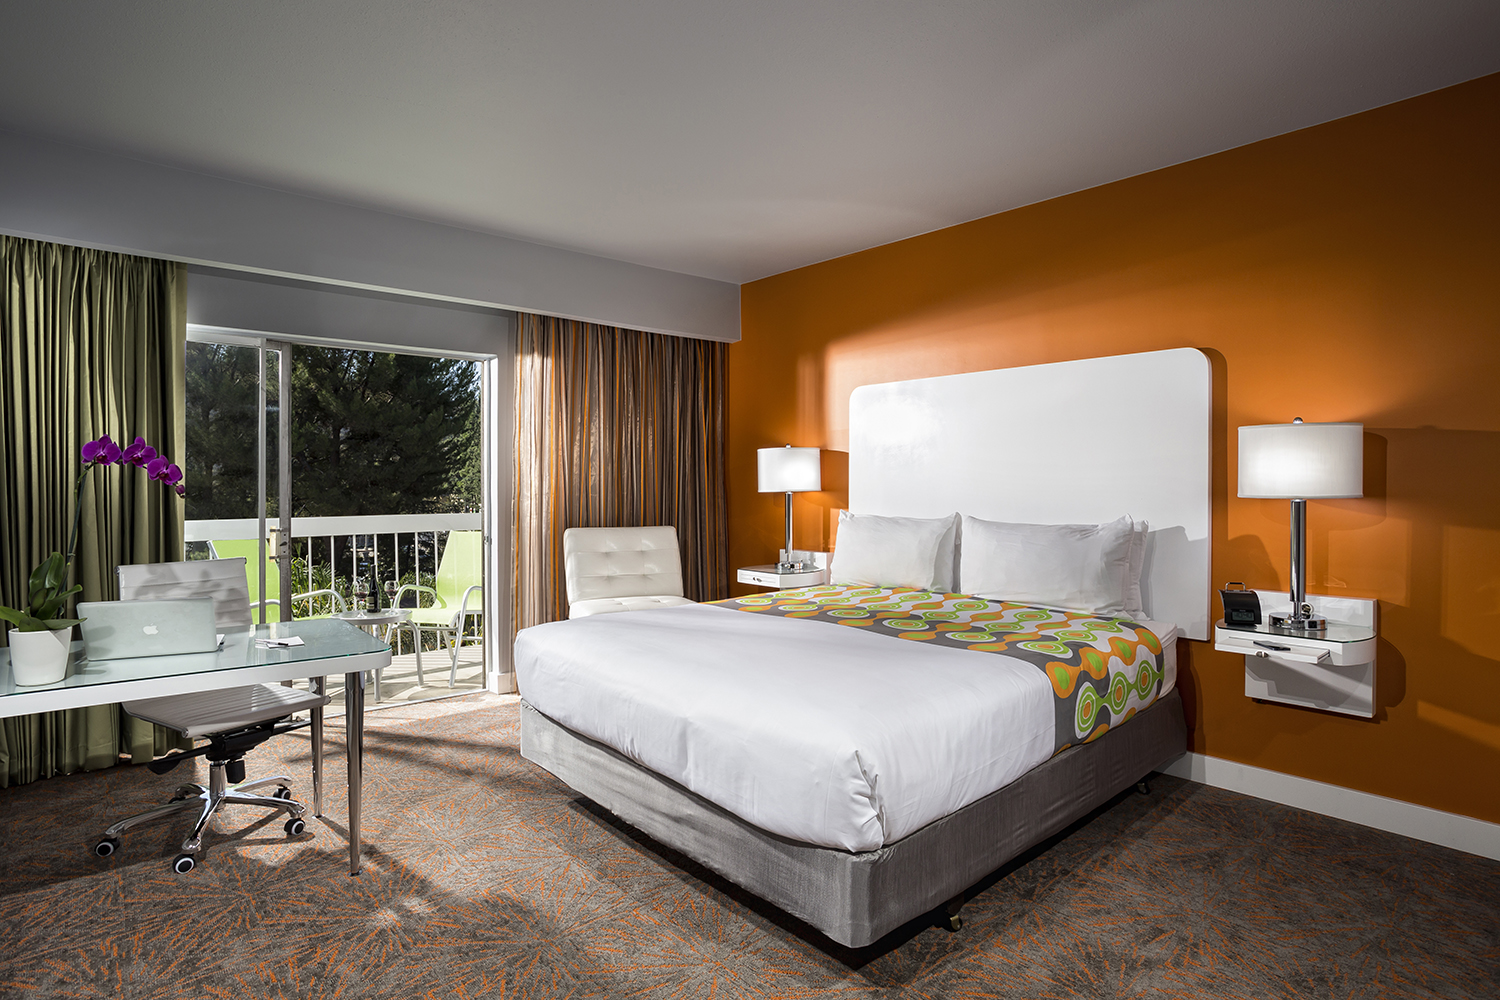 Guests booking a four-night stay at the historic hotel during the month of July will receive celebrity treatment, including four complimentary breakfast meals throughout their stay.